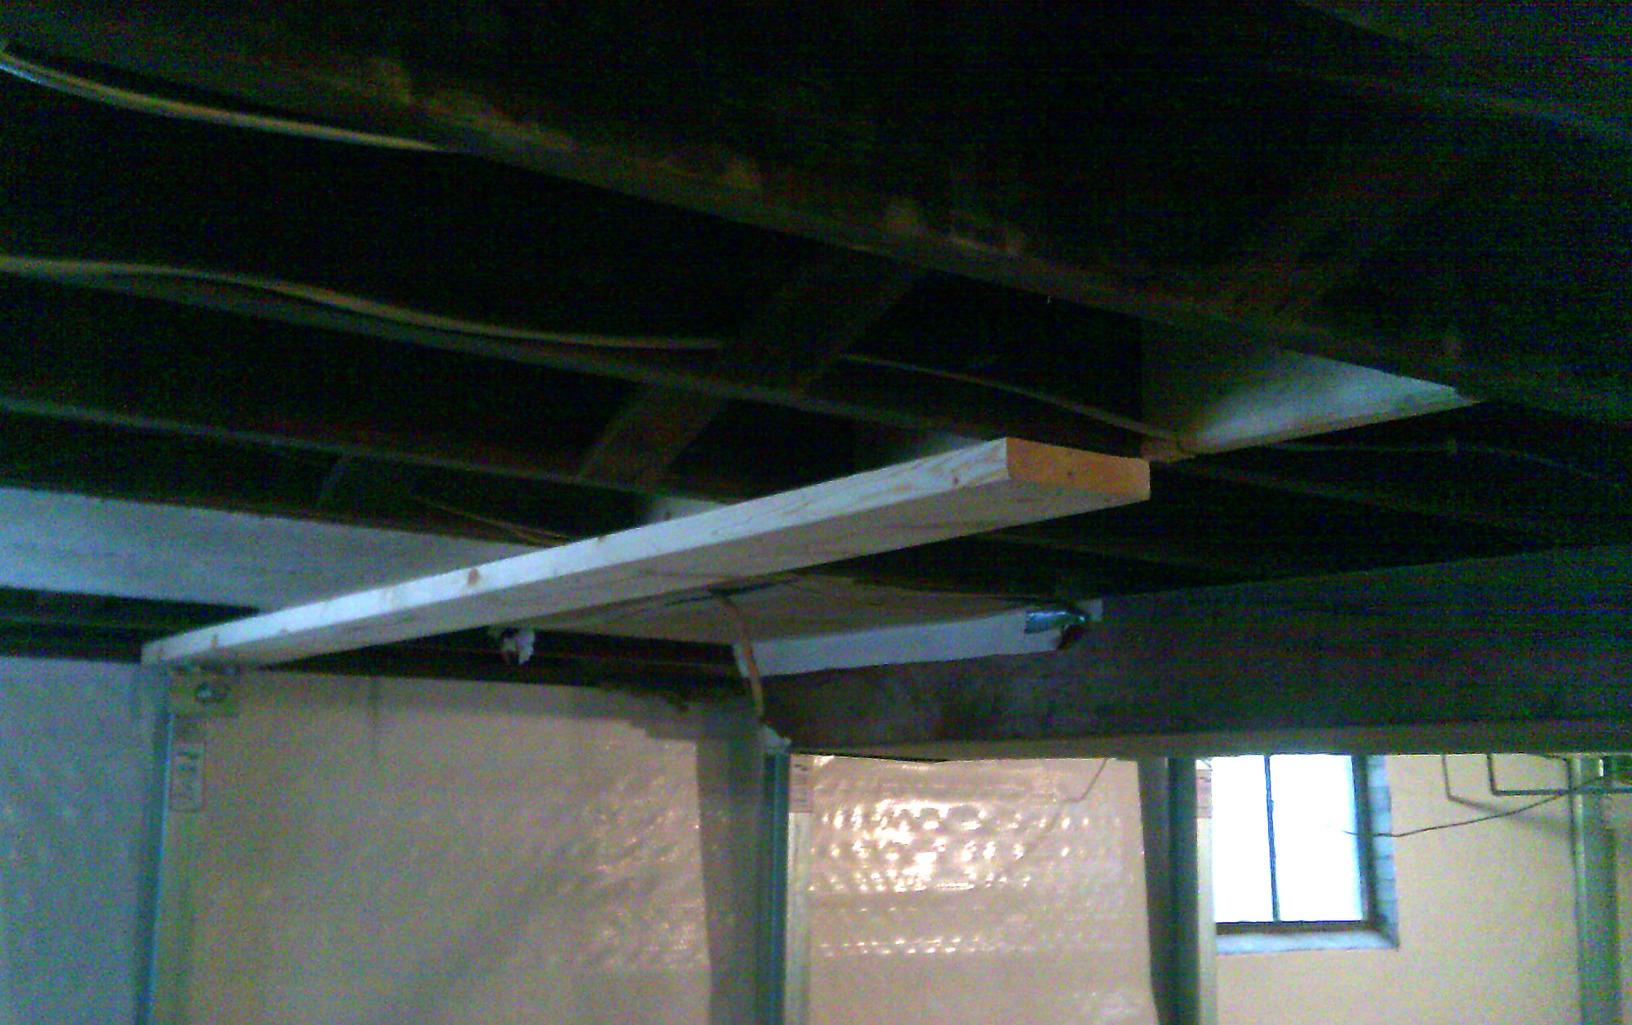 The team constructed joist reinforcements to secure the installation of the PowerBrace system.